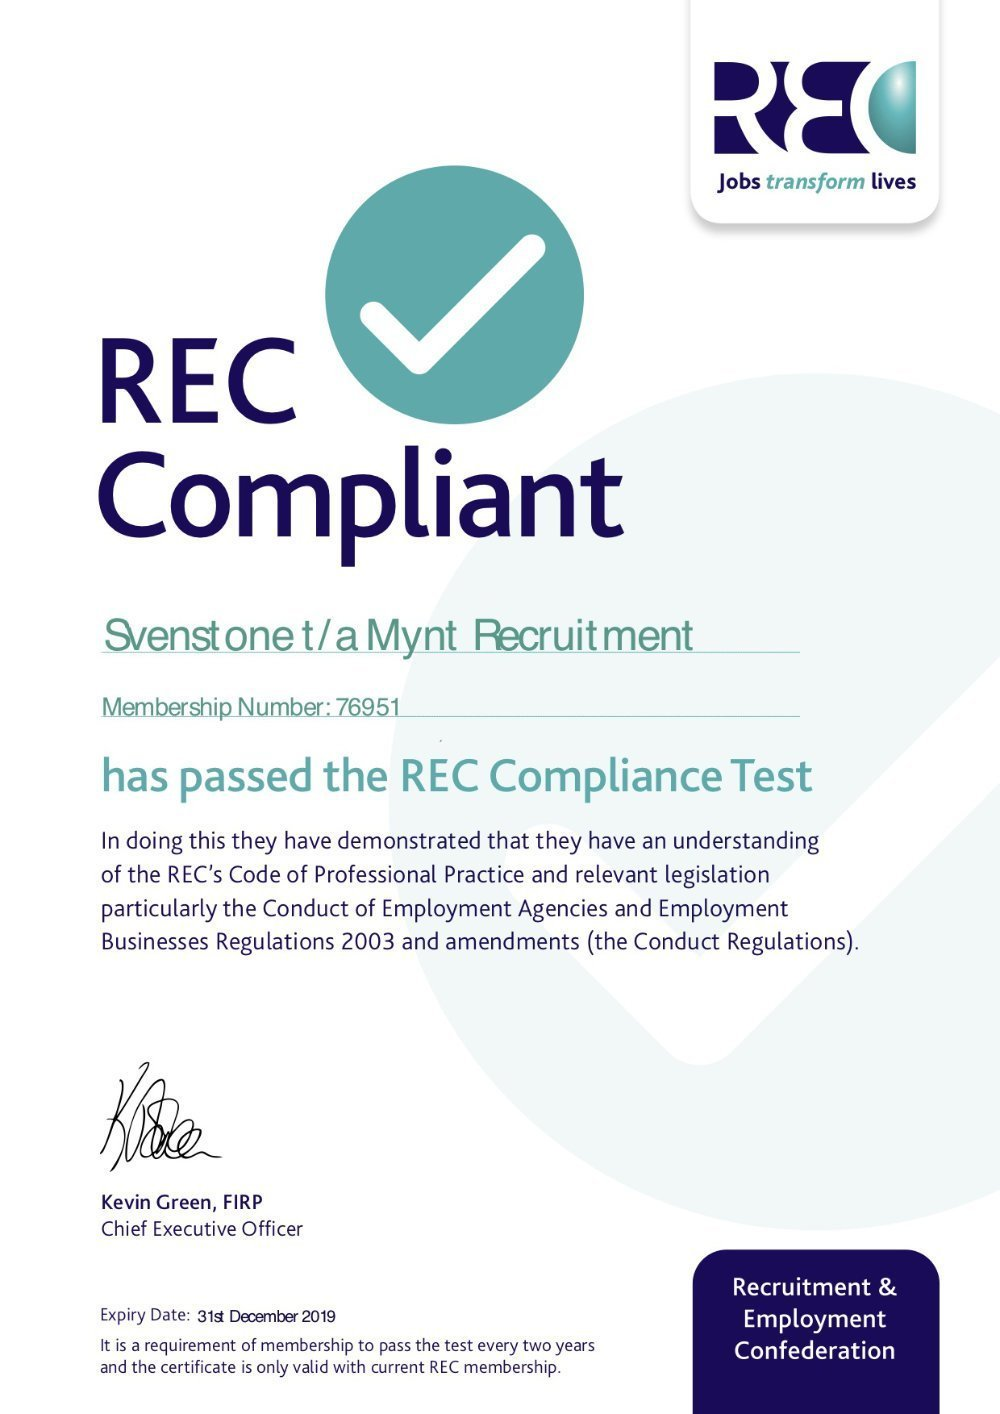 We are REC Compliant (again)